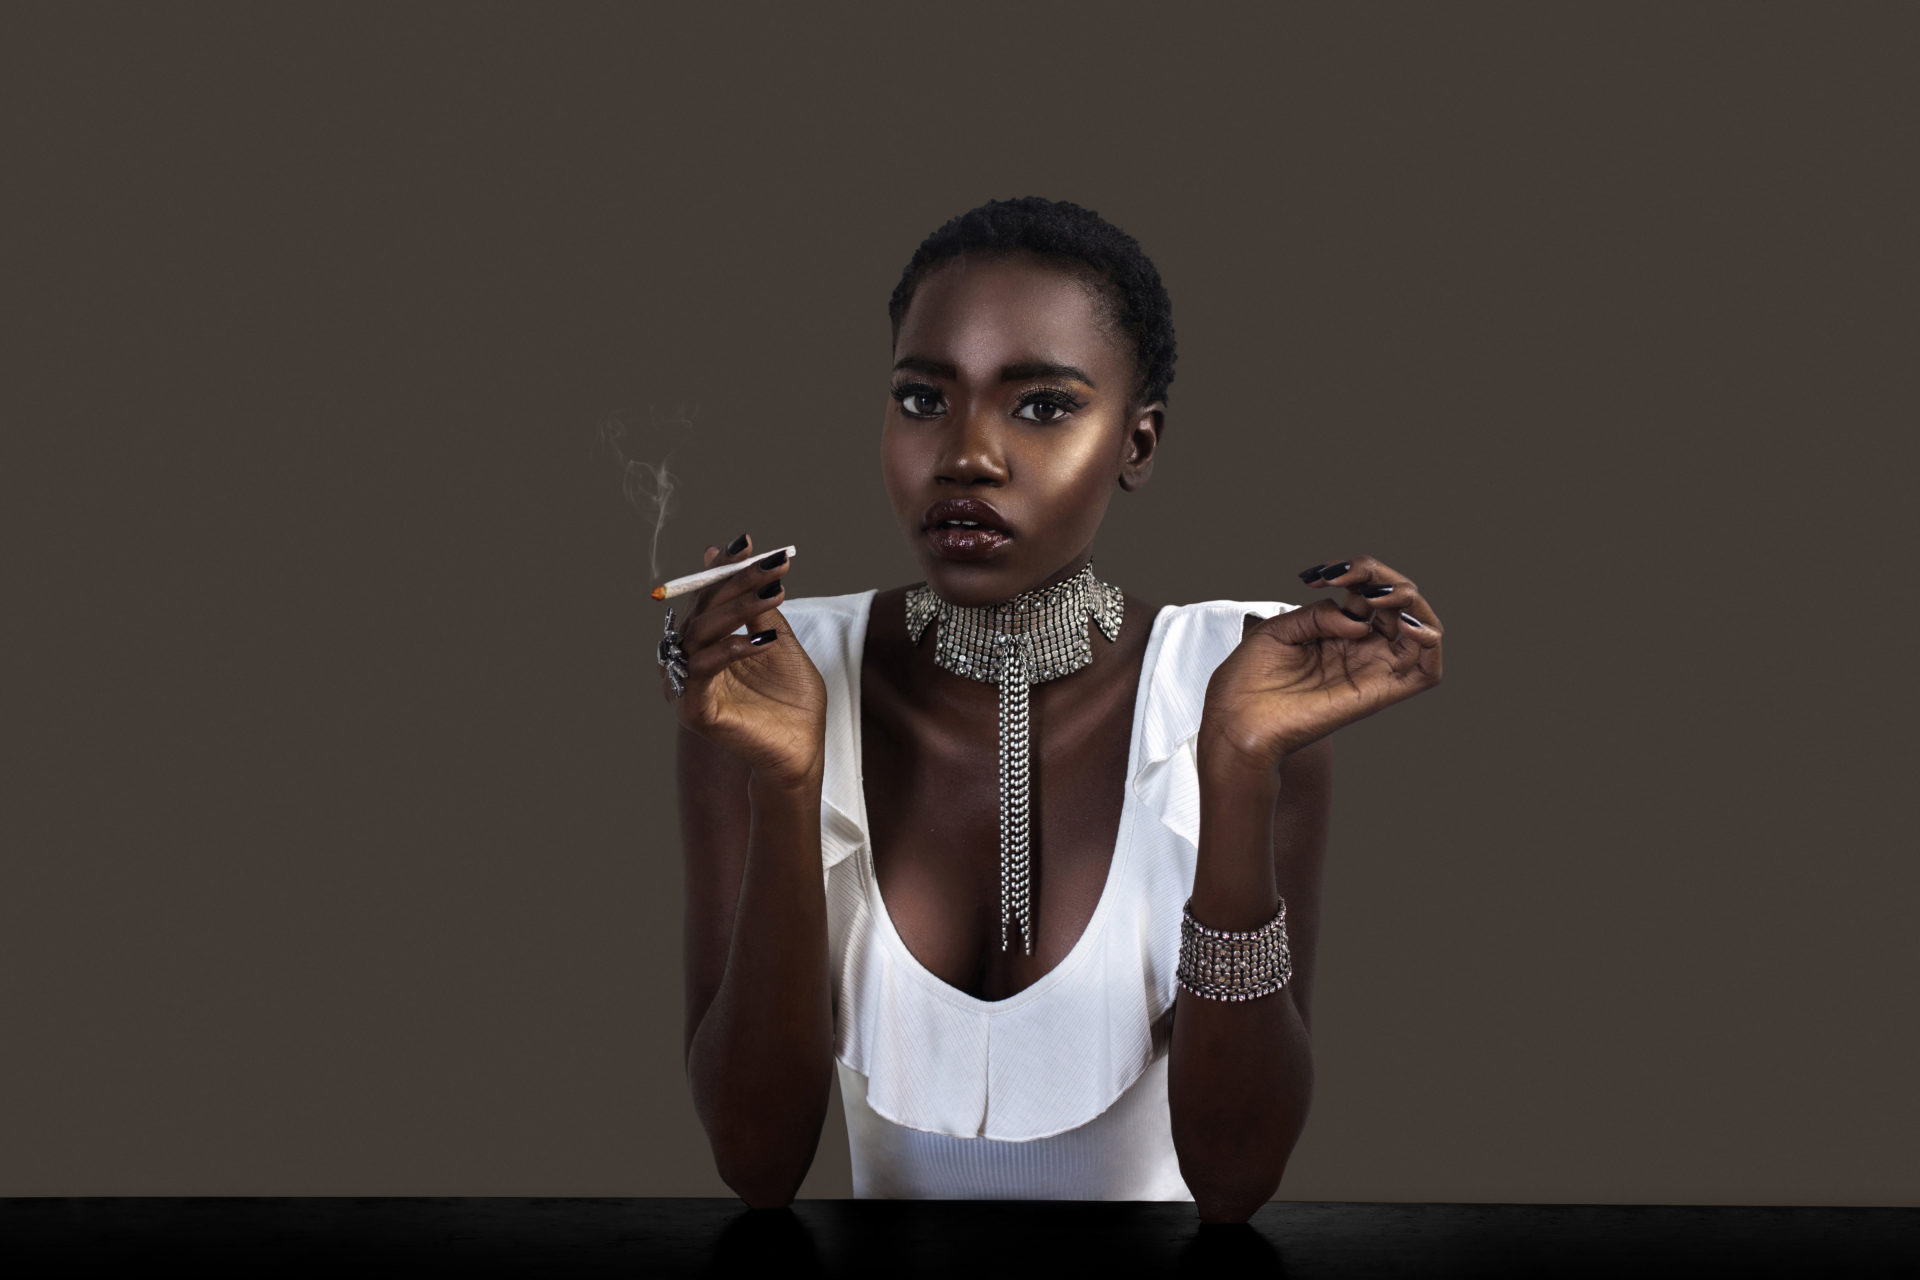 Joint Smoking Sophisticated Black Lady in Silver Jewelry